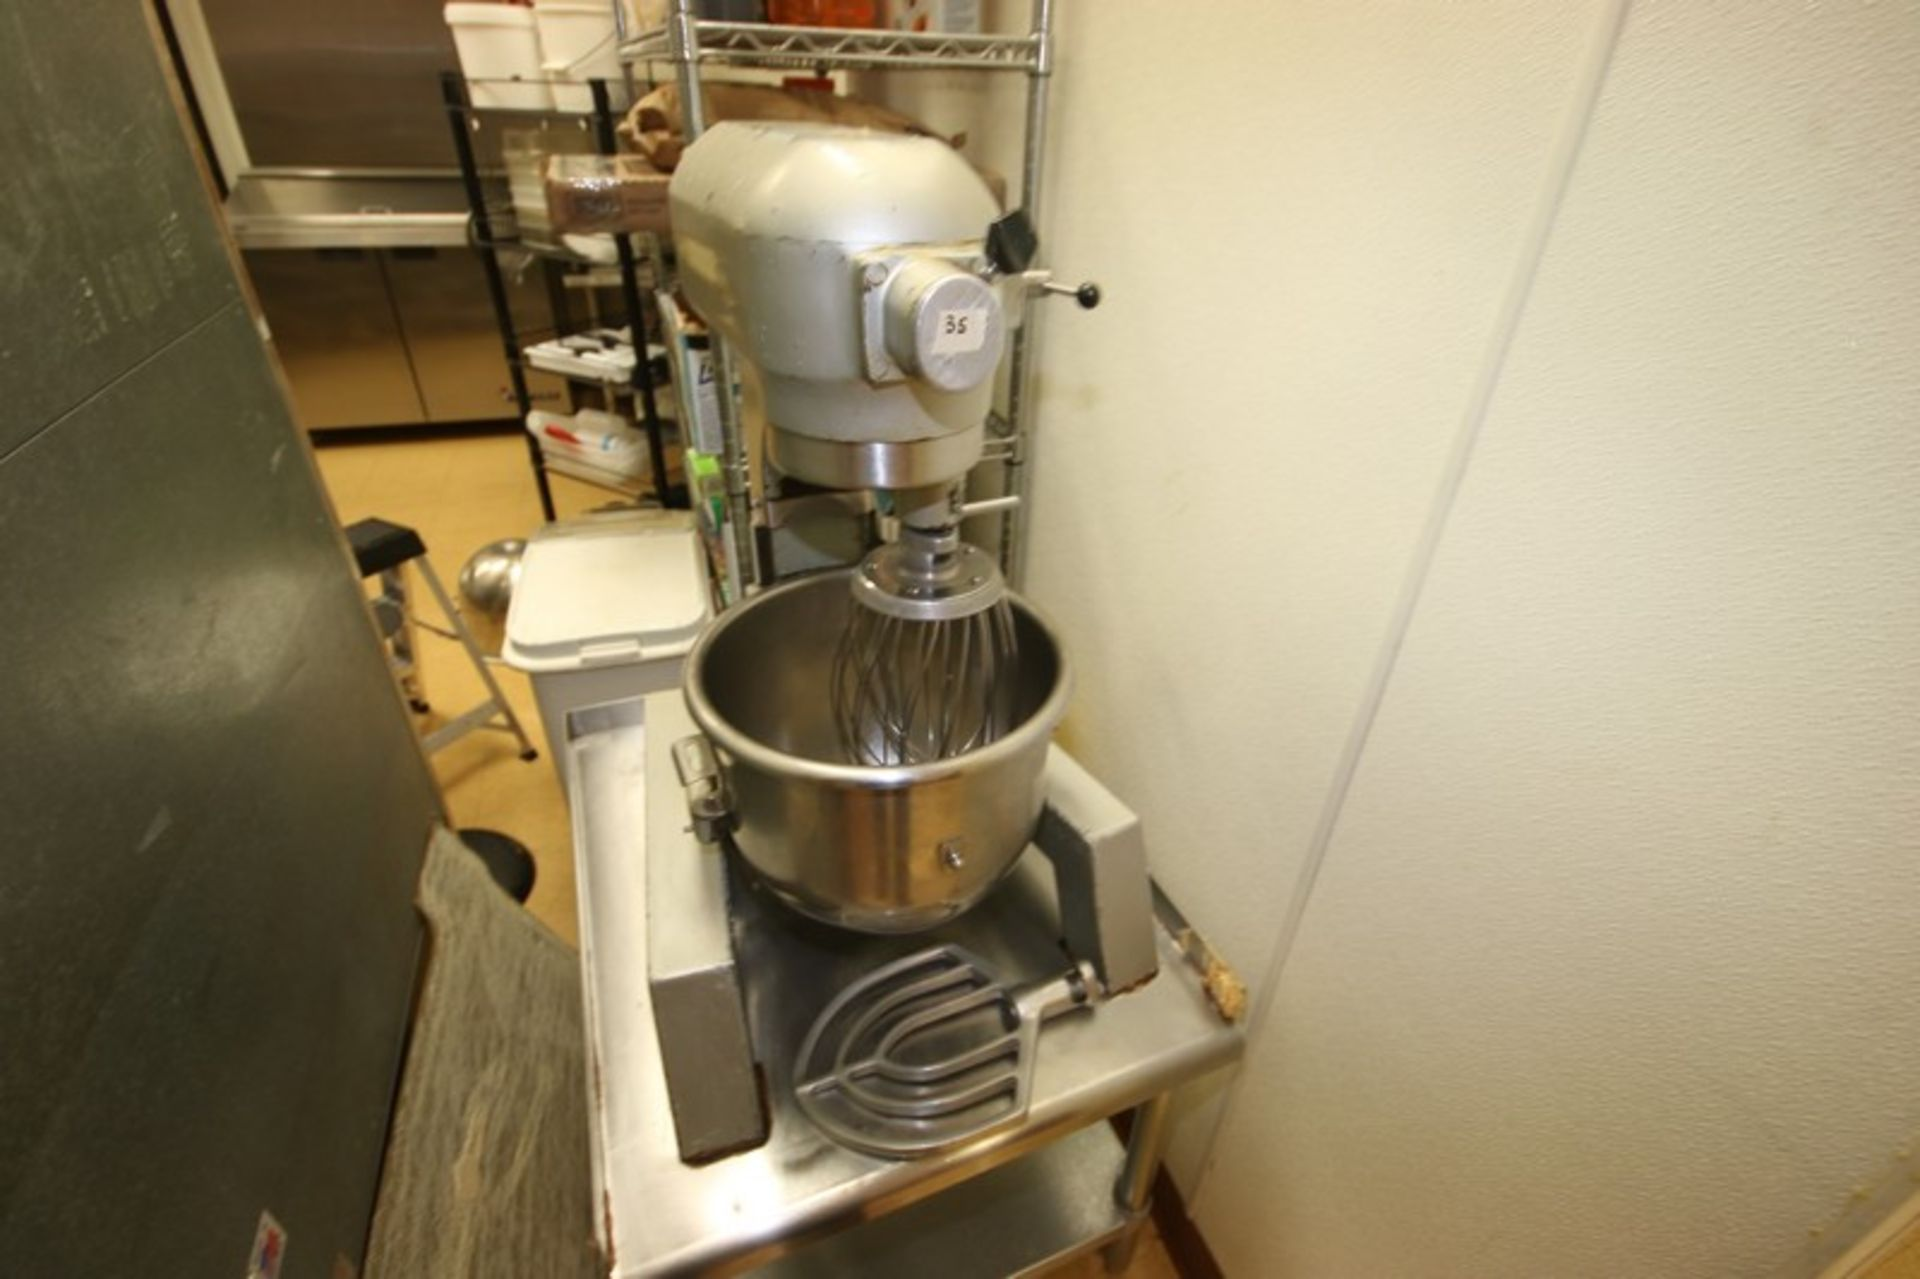 Hobart Mixer, M/N A300F, S/N 11-306-736, 115 Volts, 1 Phase, with S/S Mixing Bowl, S/S Whip & Flat - Image 7 of 7